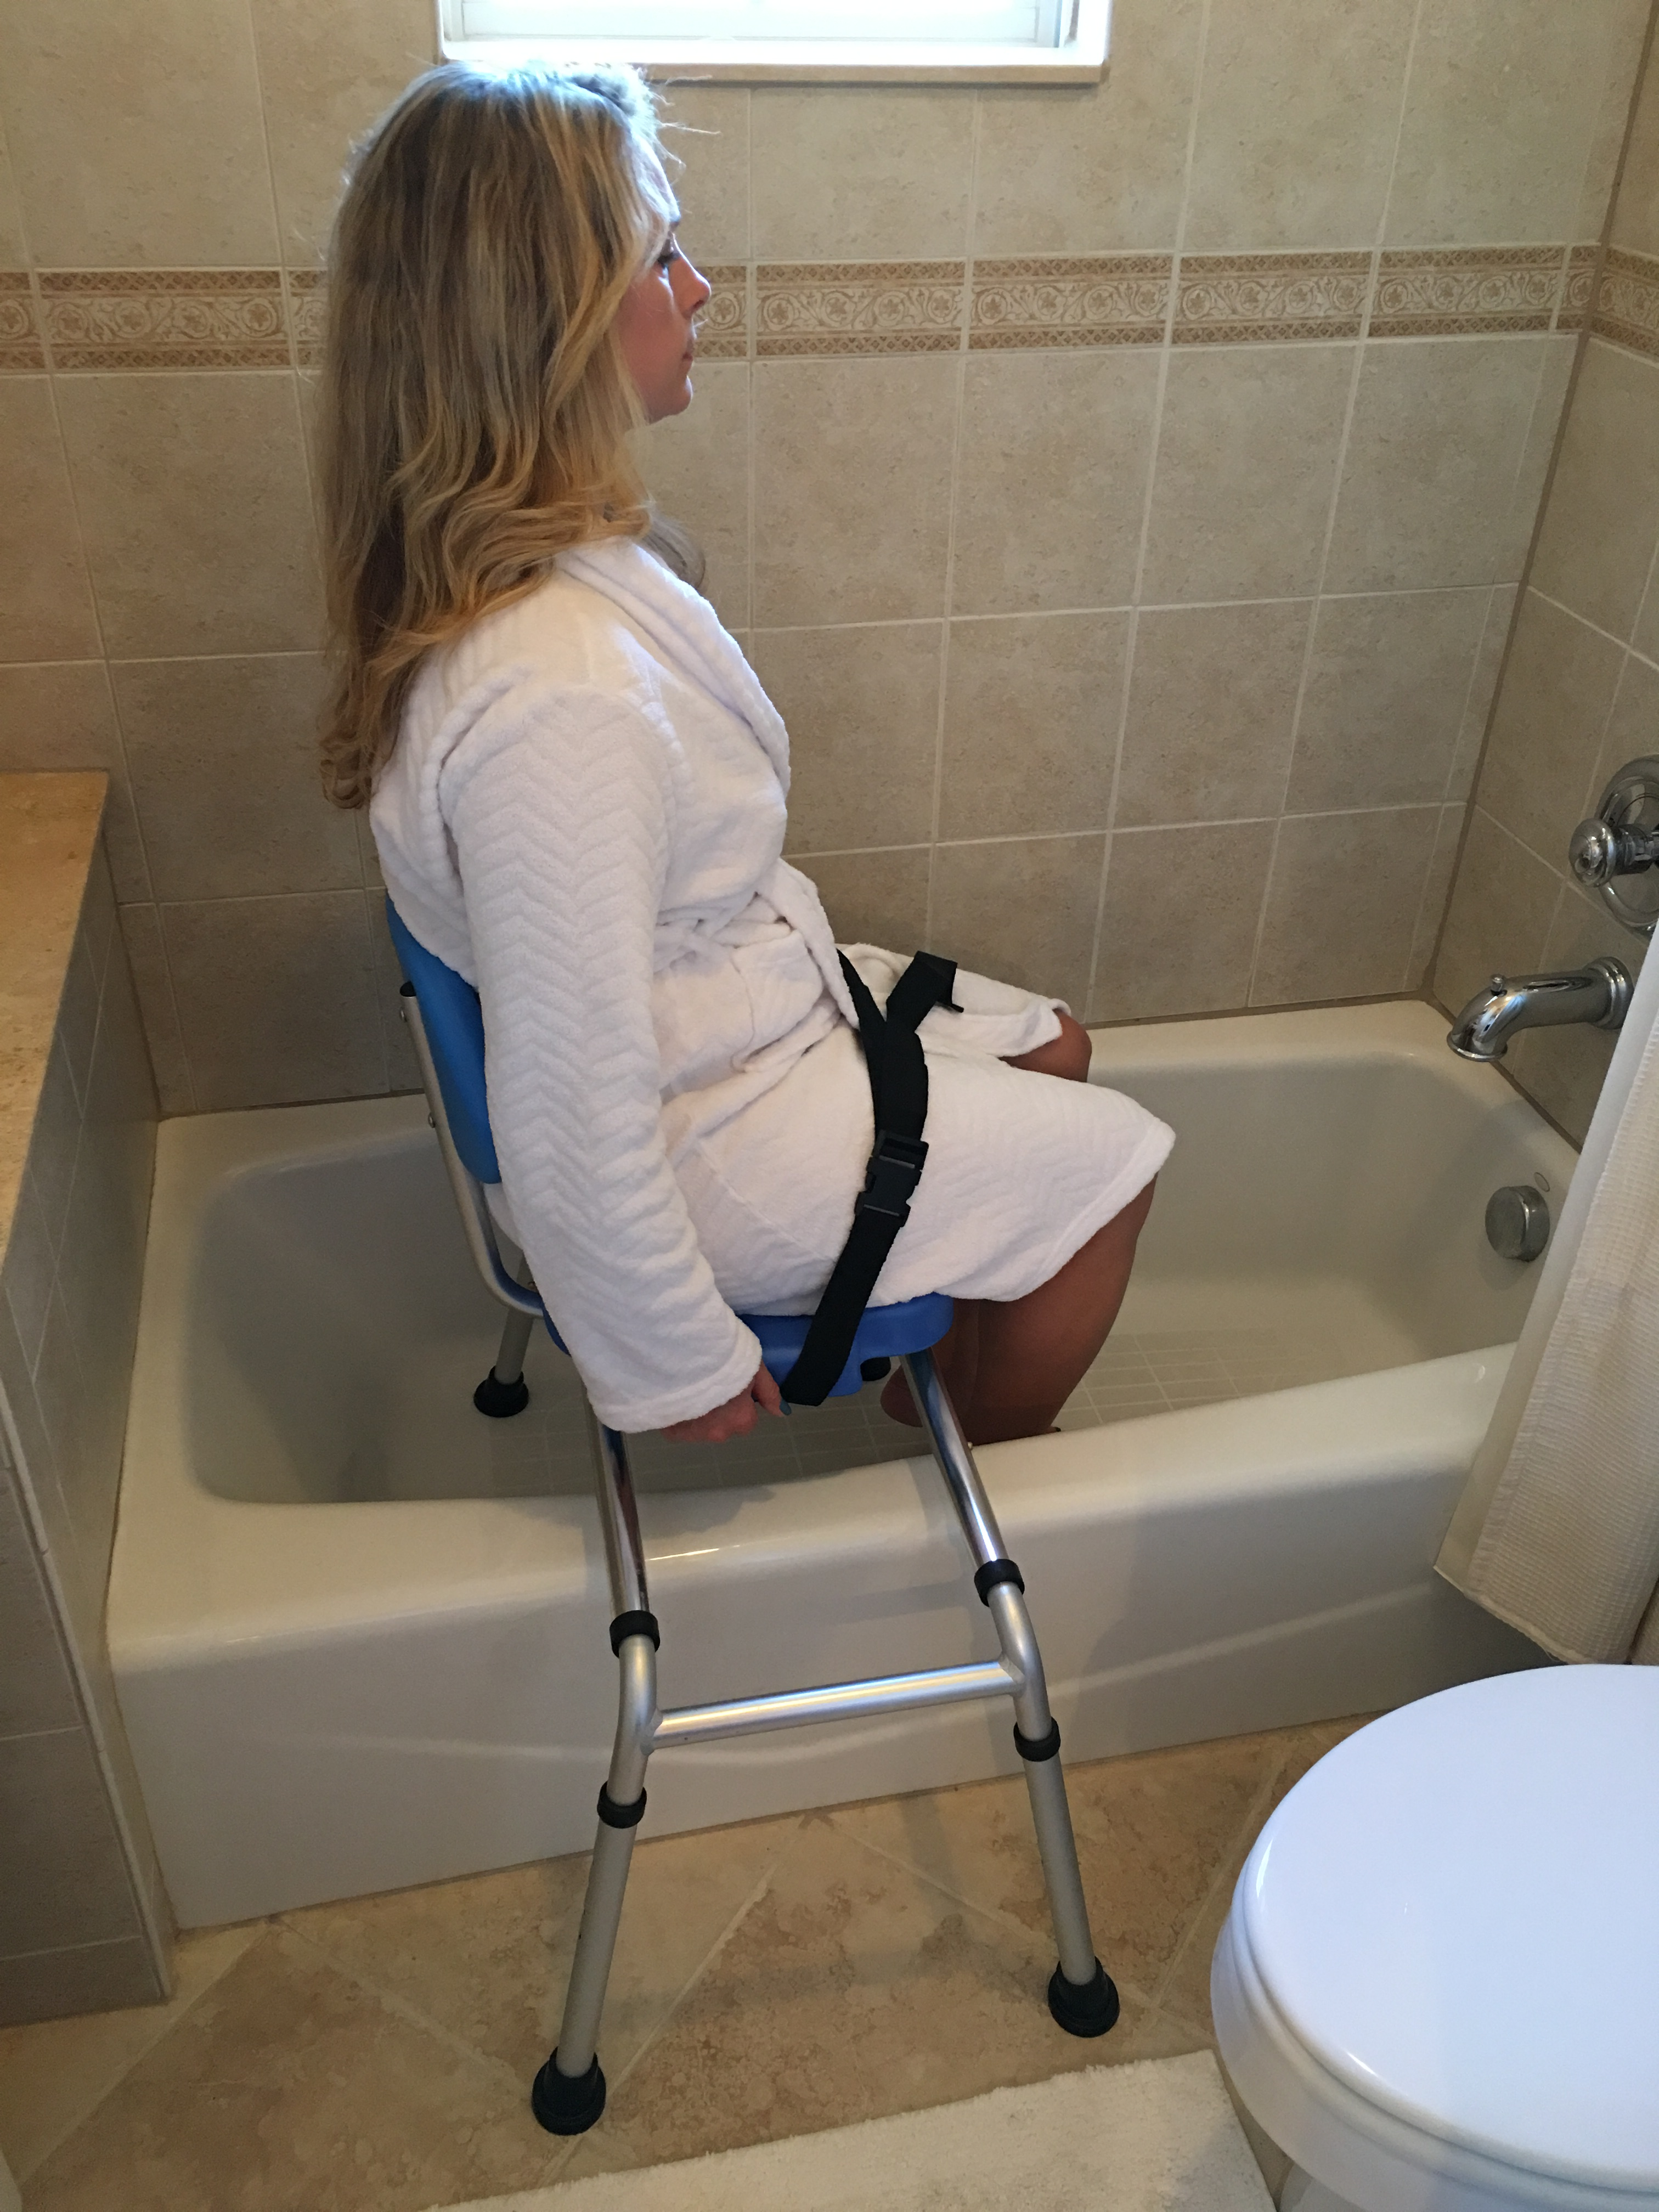 Fabulous Hydroglyde Premium Sliding Bath Transfer Bench Shower Chair Onthecornerstone Fun Painted Chair Ideas Images Onthecornerstoneorg